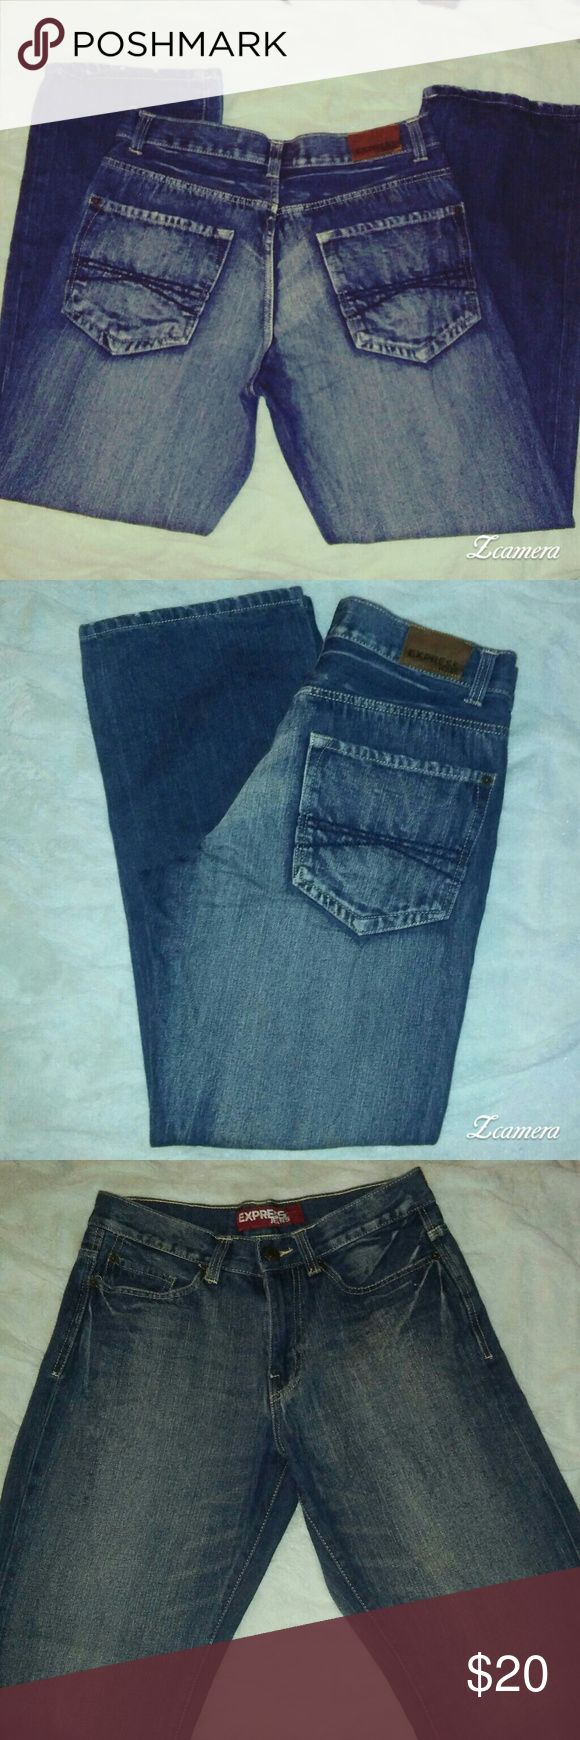 EXPRESS Men's Jeans 32×32 *Super nice EXPRESS Men's jeans *32 inch waist 32 inch inseam *Very Very nice Medium/dark wash *Kingston Boot Cut, Classic fit, regular rise *NO flaws perfect condition Express Jeans Bootcut